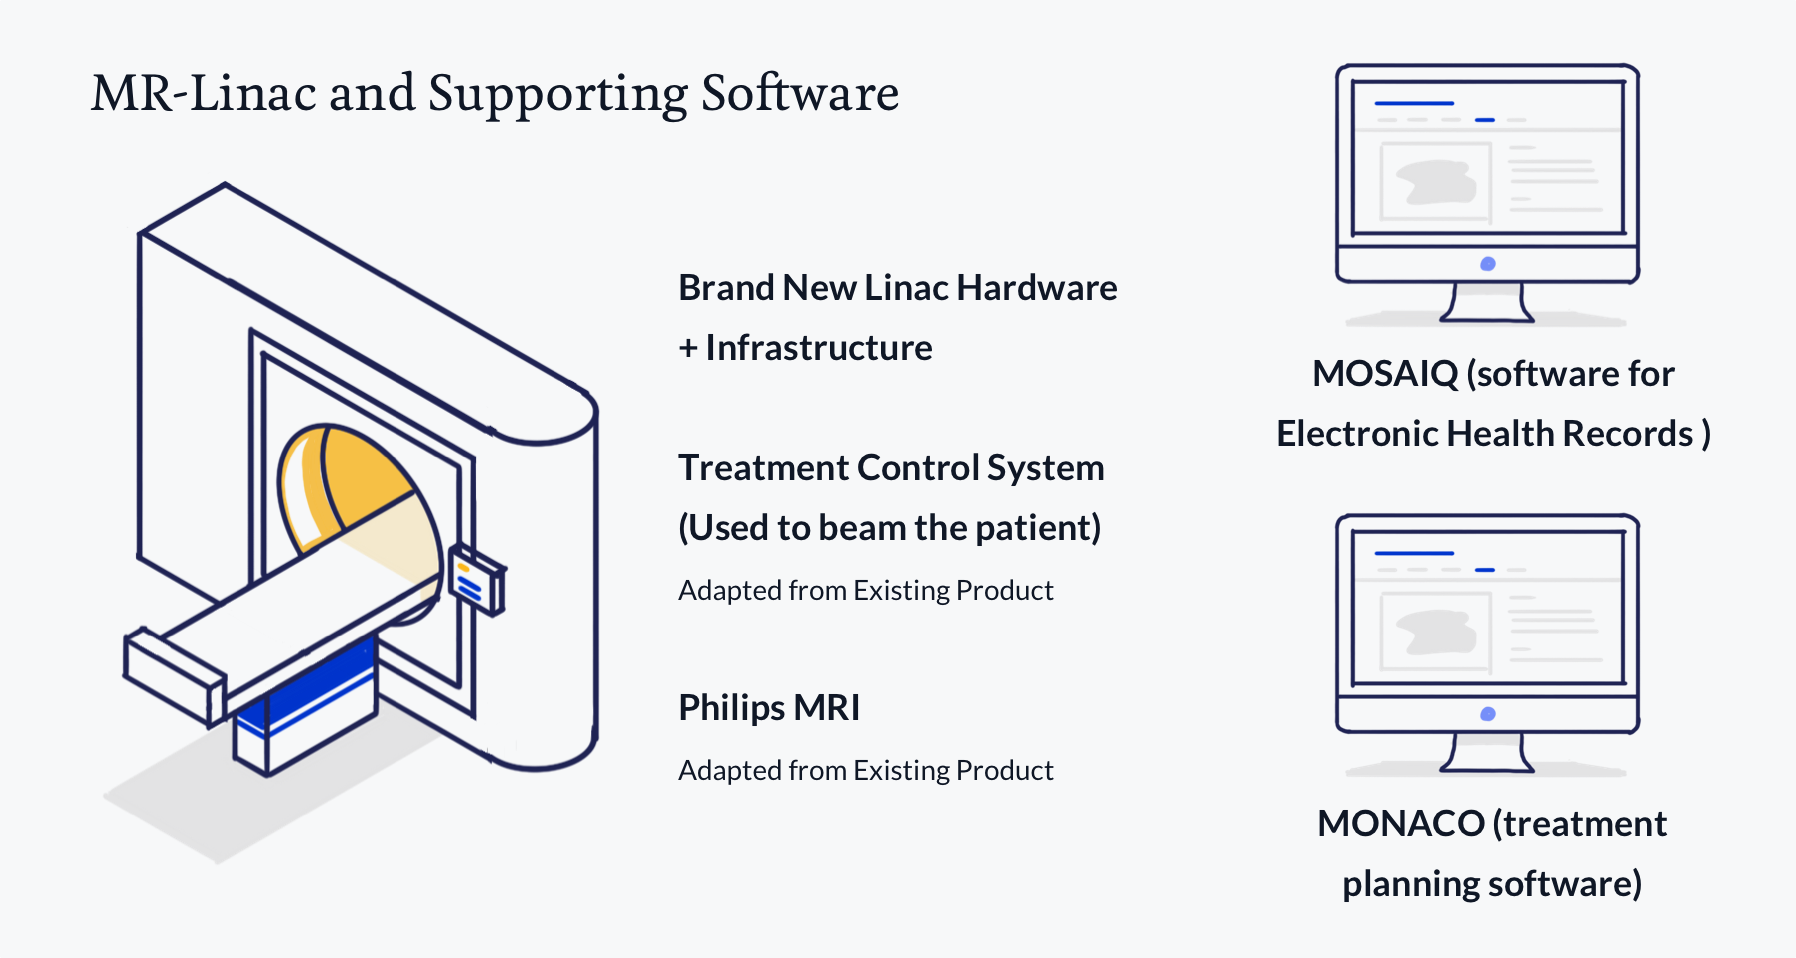 Drawing of MR Linac and Supporting Software